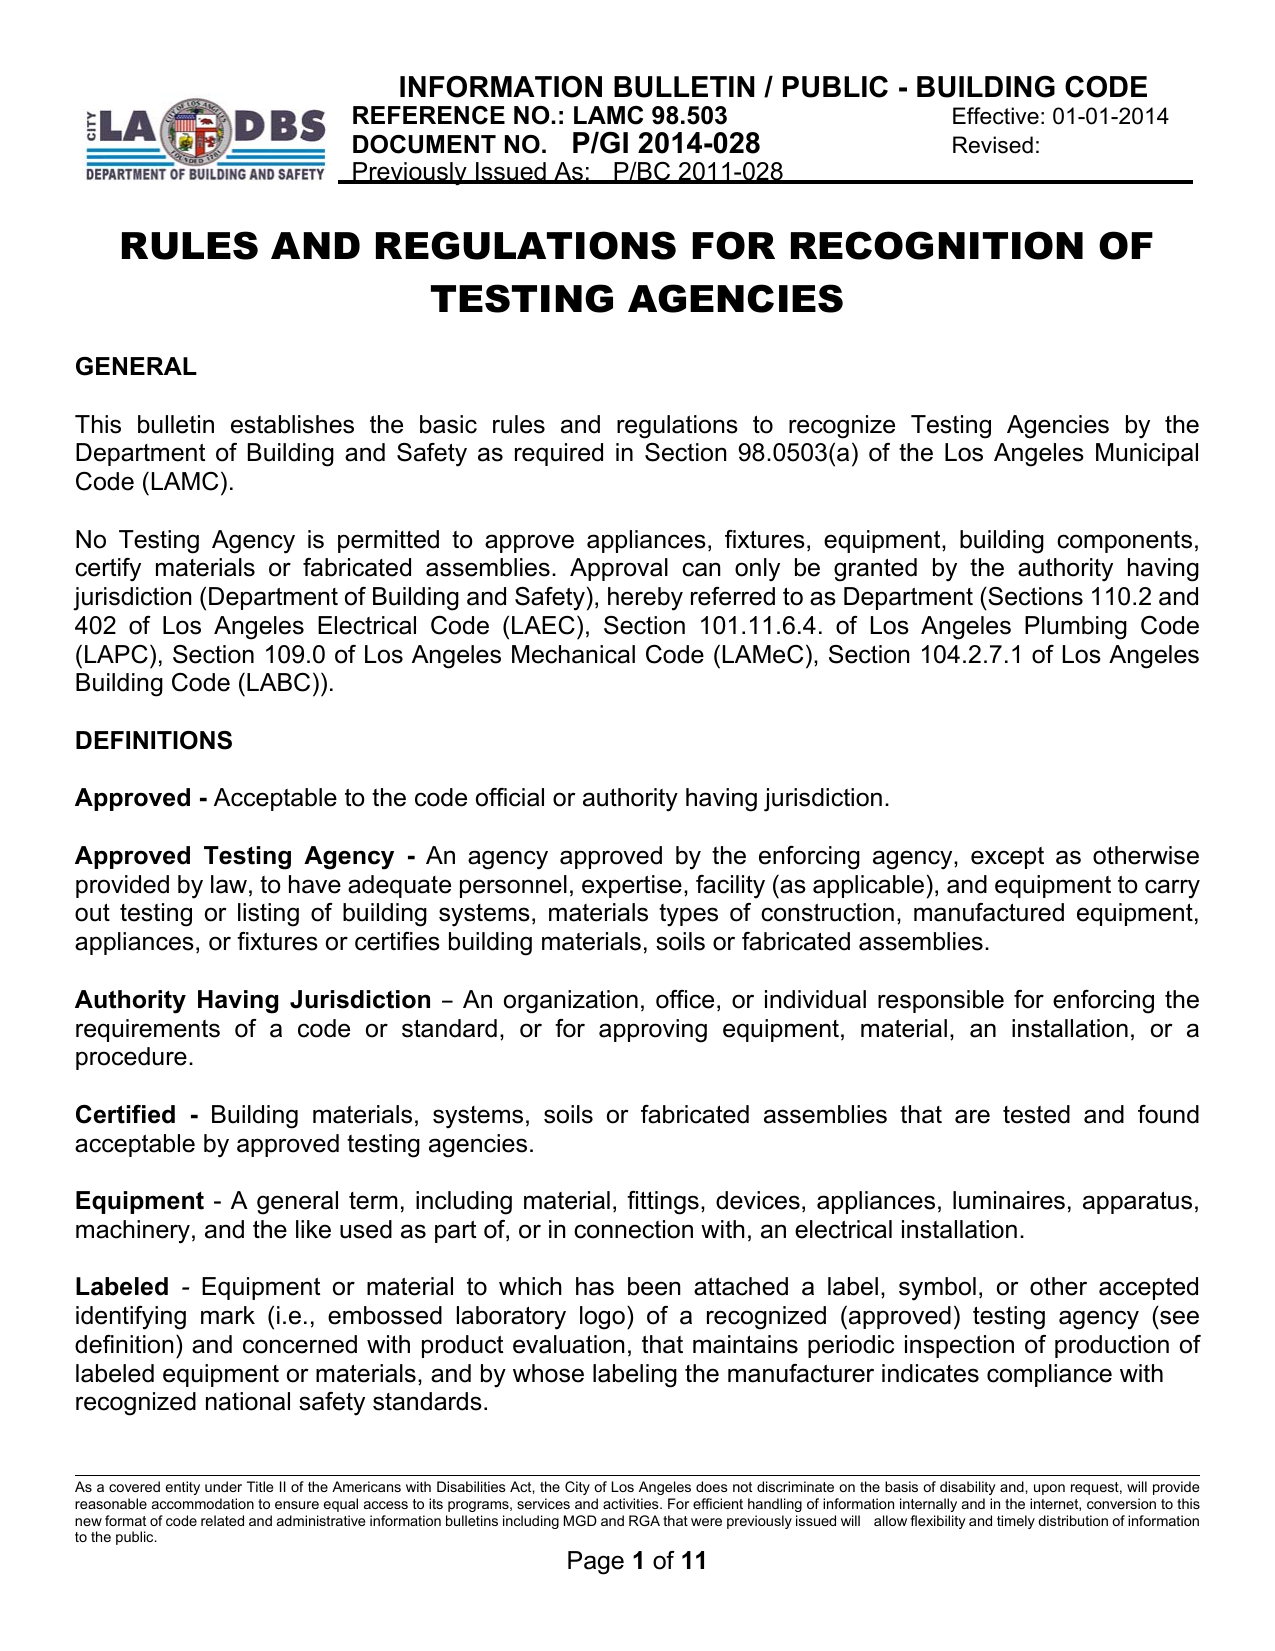 Rules and Regulations for Recognition of Testing Agencies